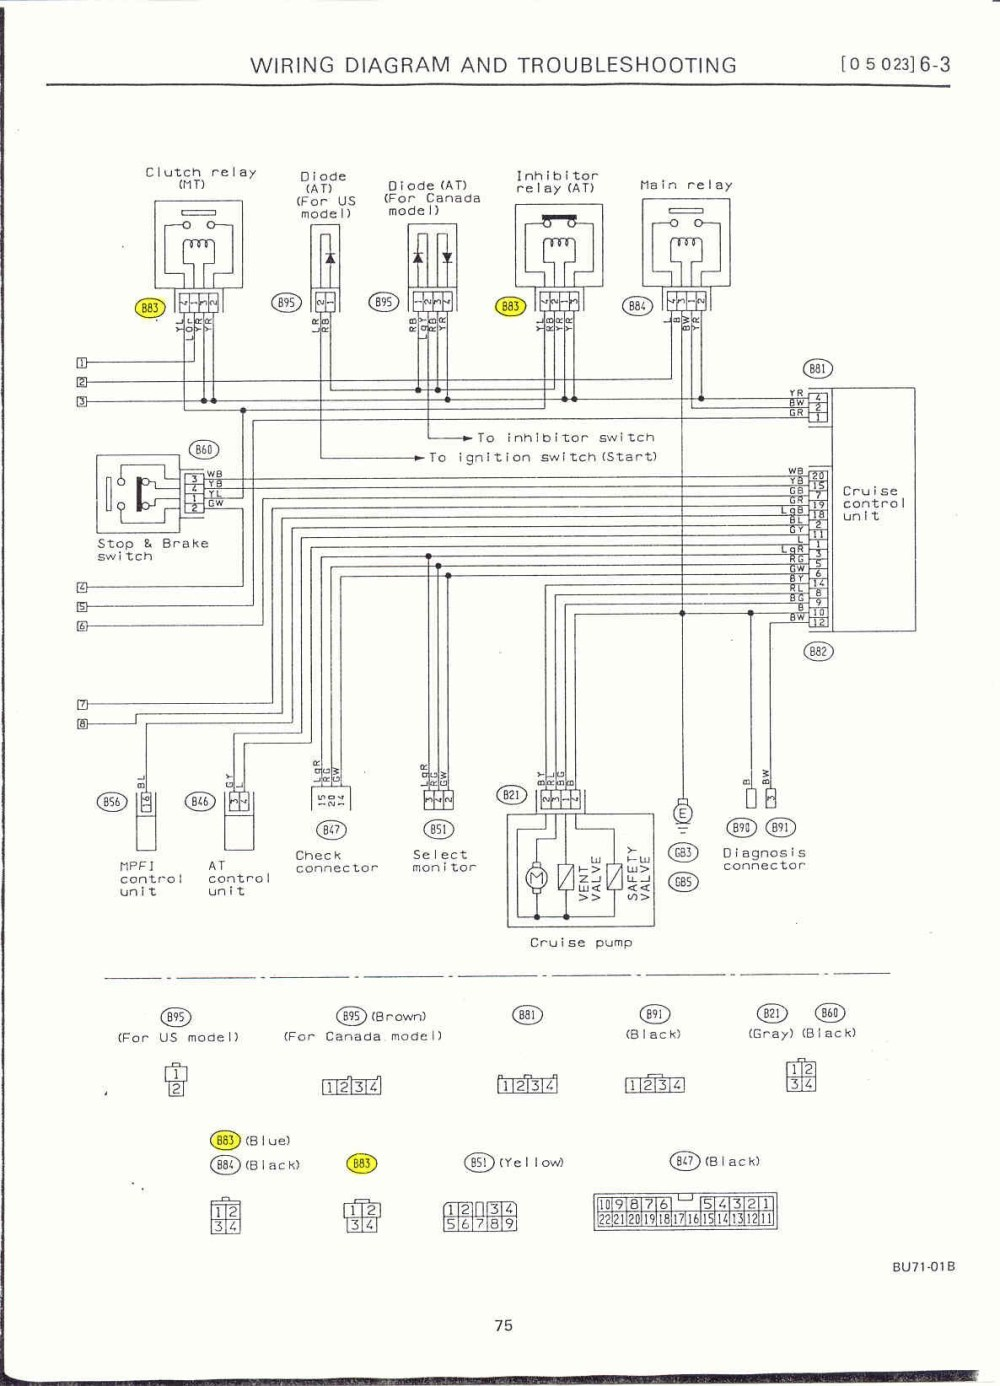 medium resolution of diagram sbf4 ckt page 2 subaru outback subaru outback forumssubaru outback wiring diagram wiring diagram technic